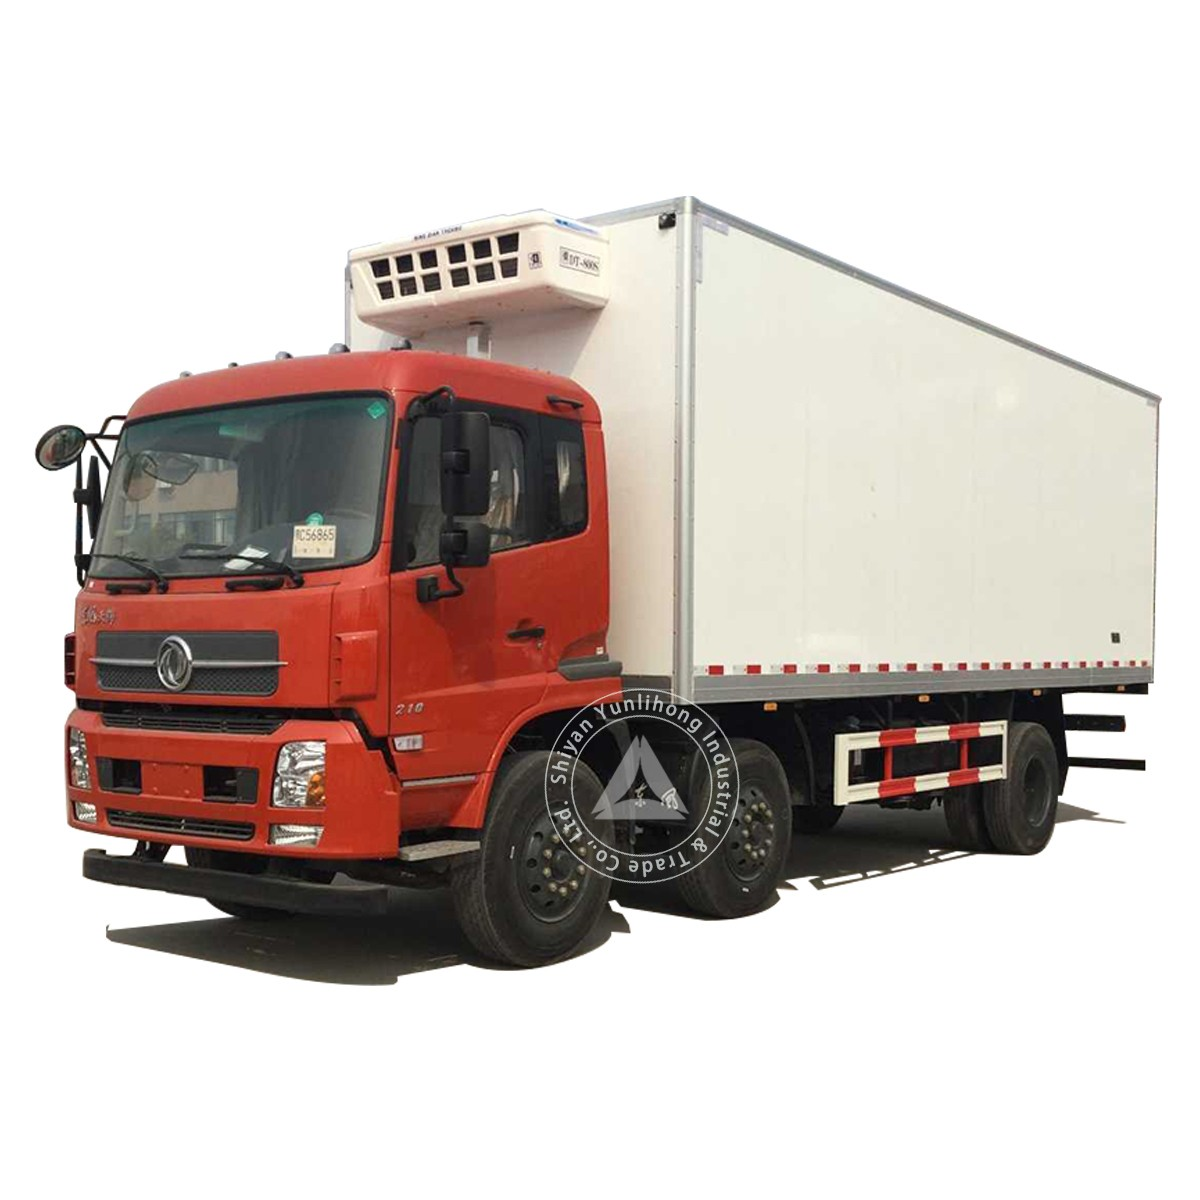 Dongfeng KR 4x2 GVW 11.6 Ton City Distribution Box TrucK Chassis Manufacturers, Dongfeng KR 4x2 GVW 11.6 Ton City Distribution Box TrucK Chassis Factory, Supply Dongfeng KR 4x2 GVW 11.6 Ton City Distribution Box TrucK Chassis